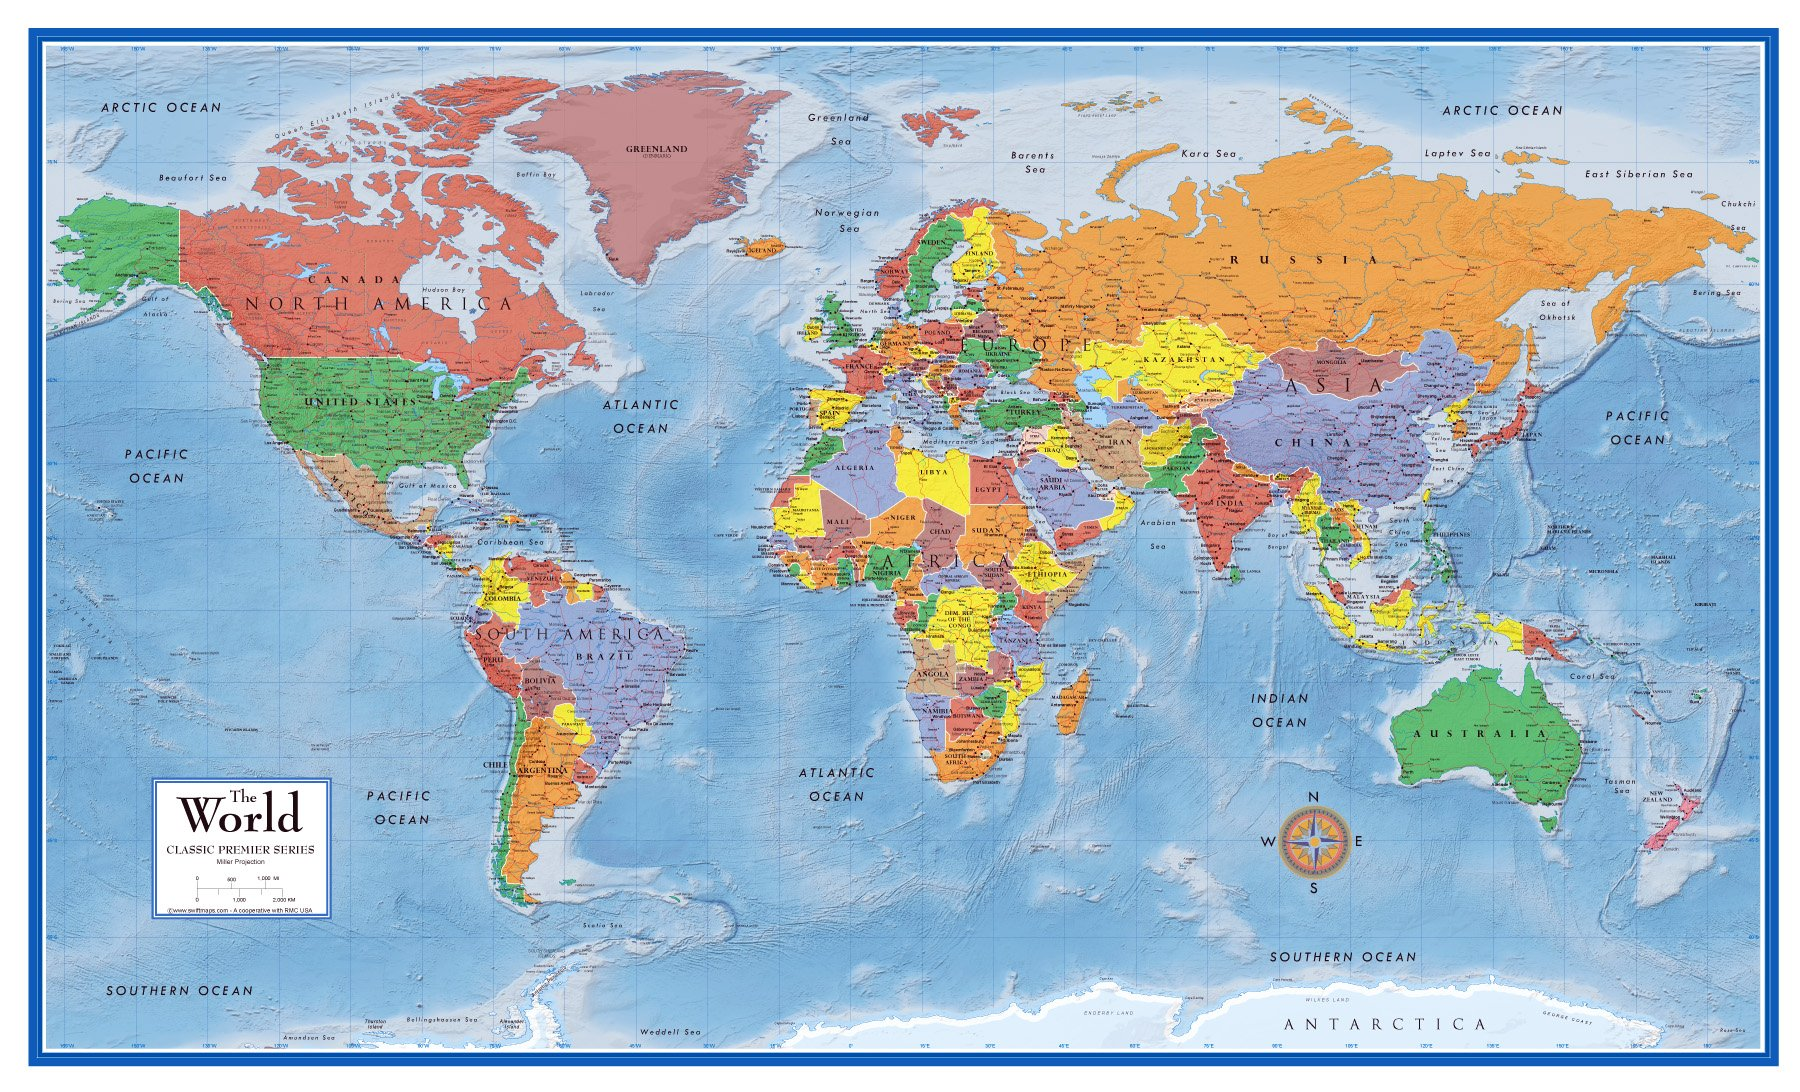 48x78 World Classic Premier Wall Map Mega Poster (48x78 FRONT LAMINATED)